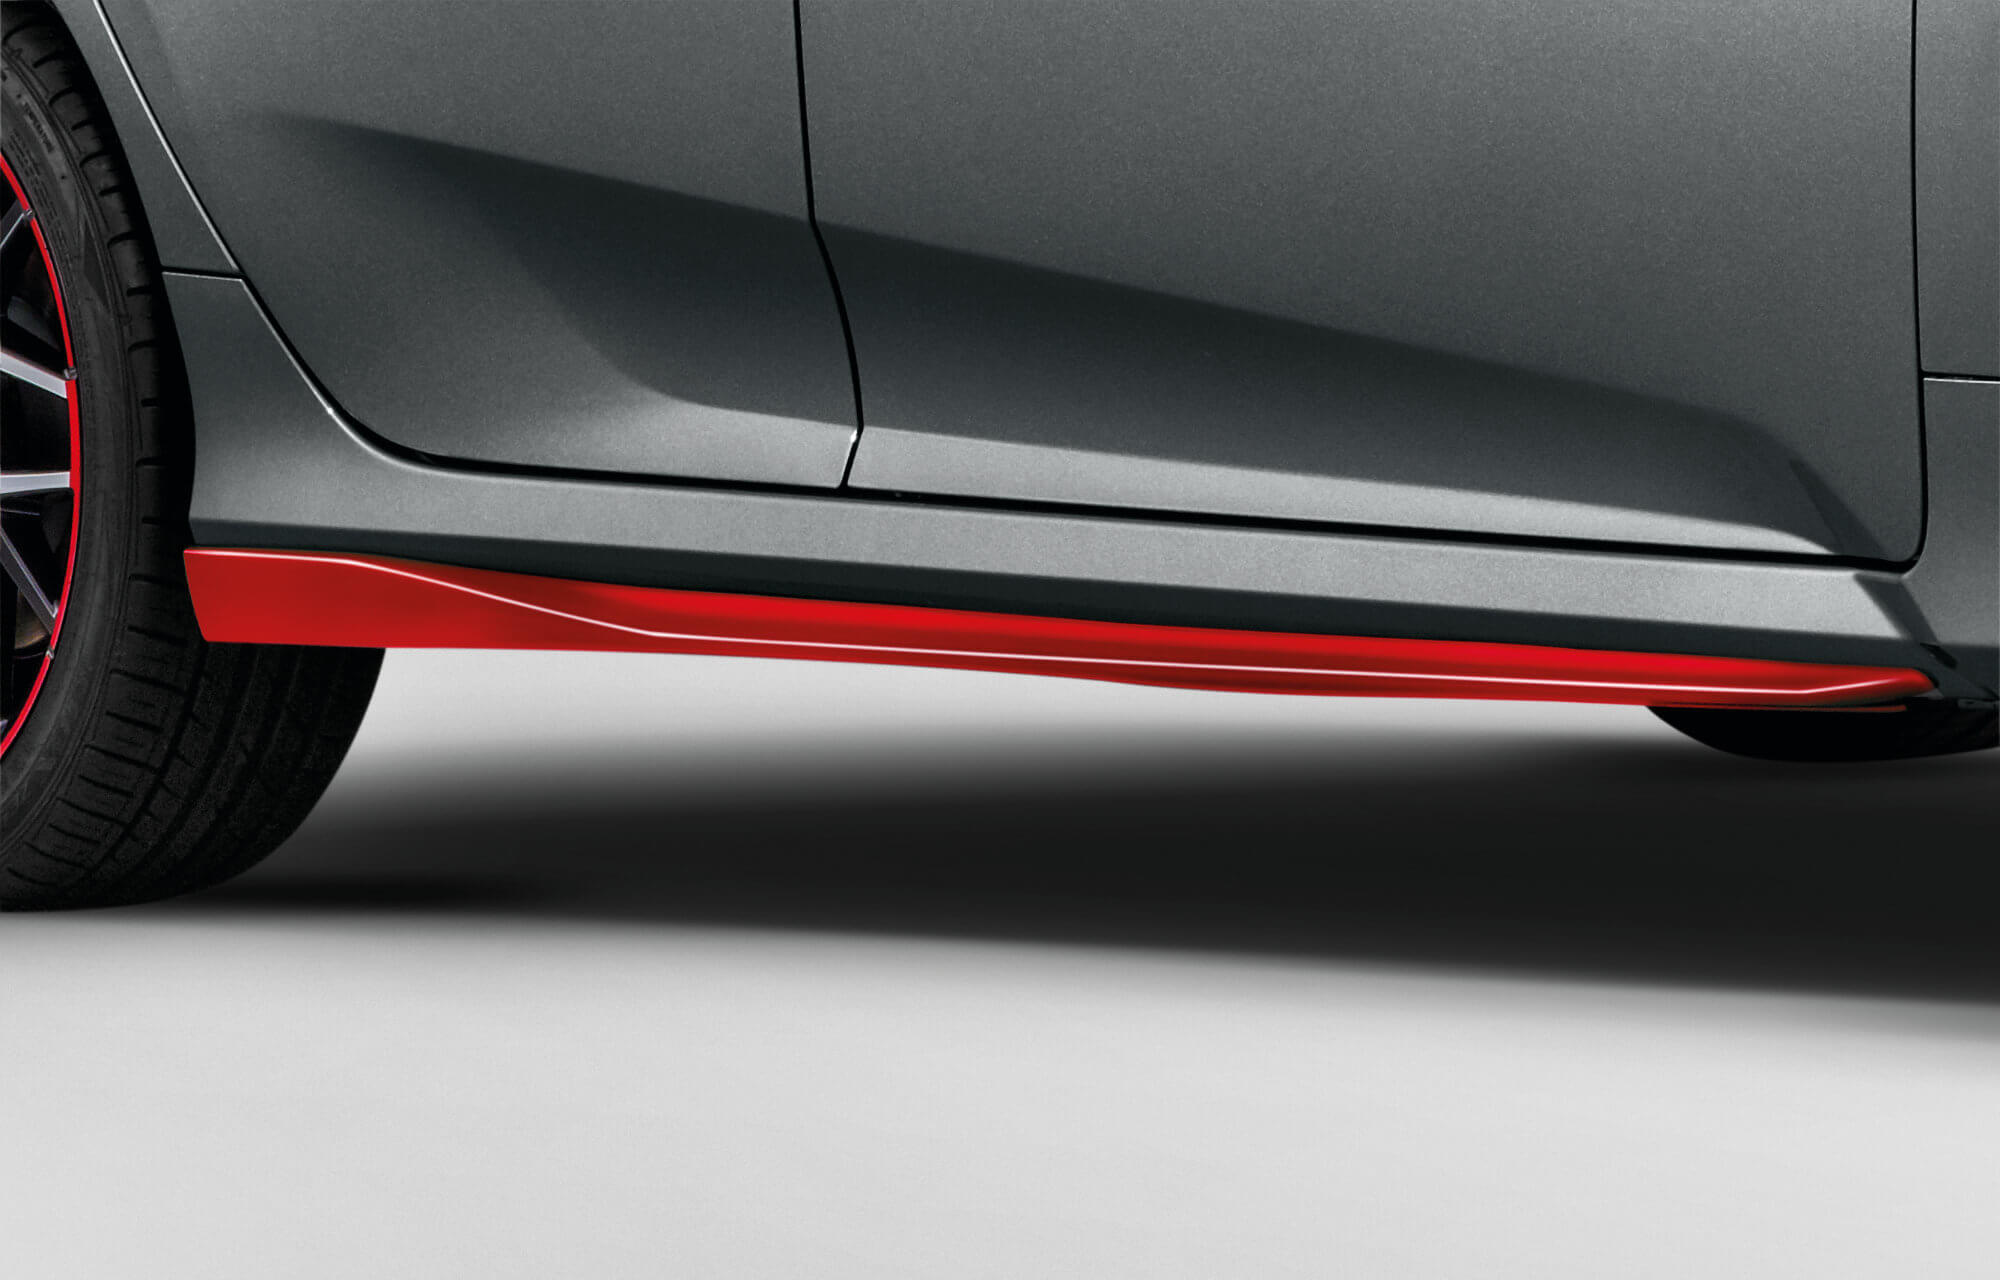 Honda Civic 5 Door Side Skirts - Rallye Red